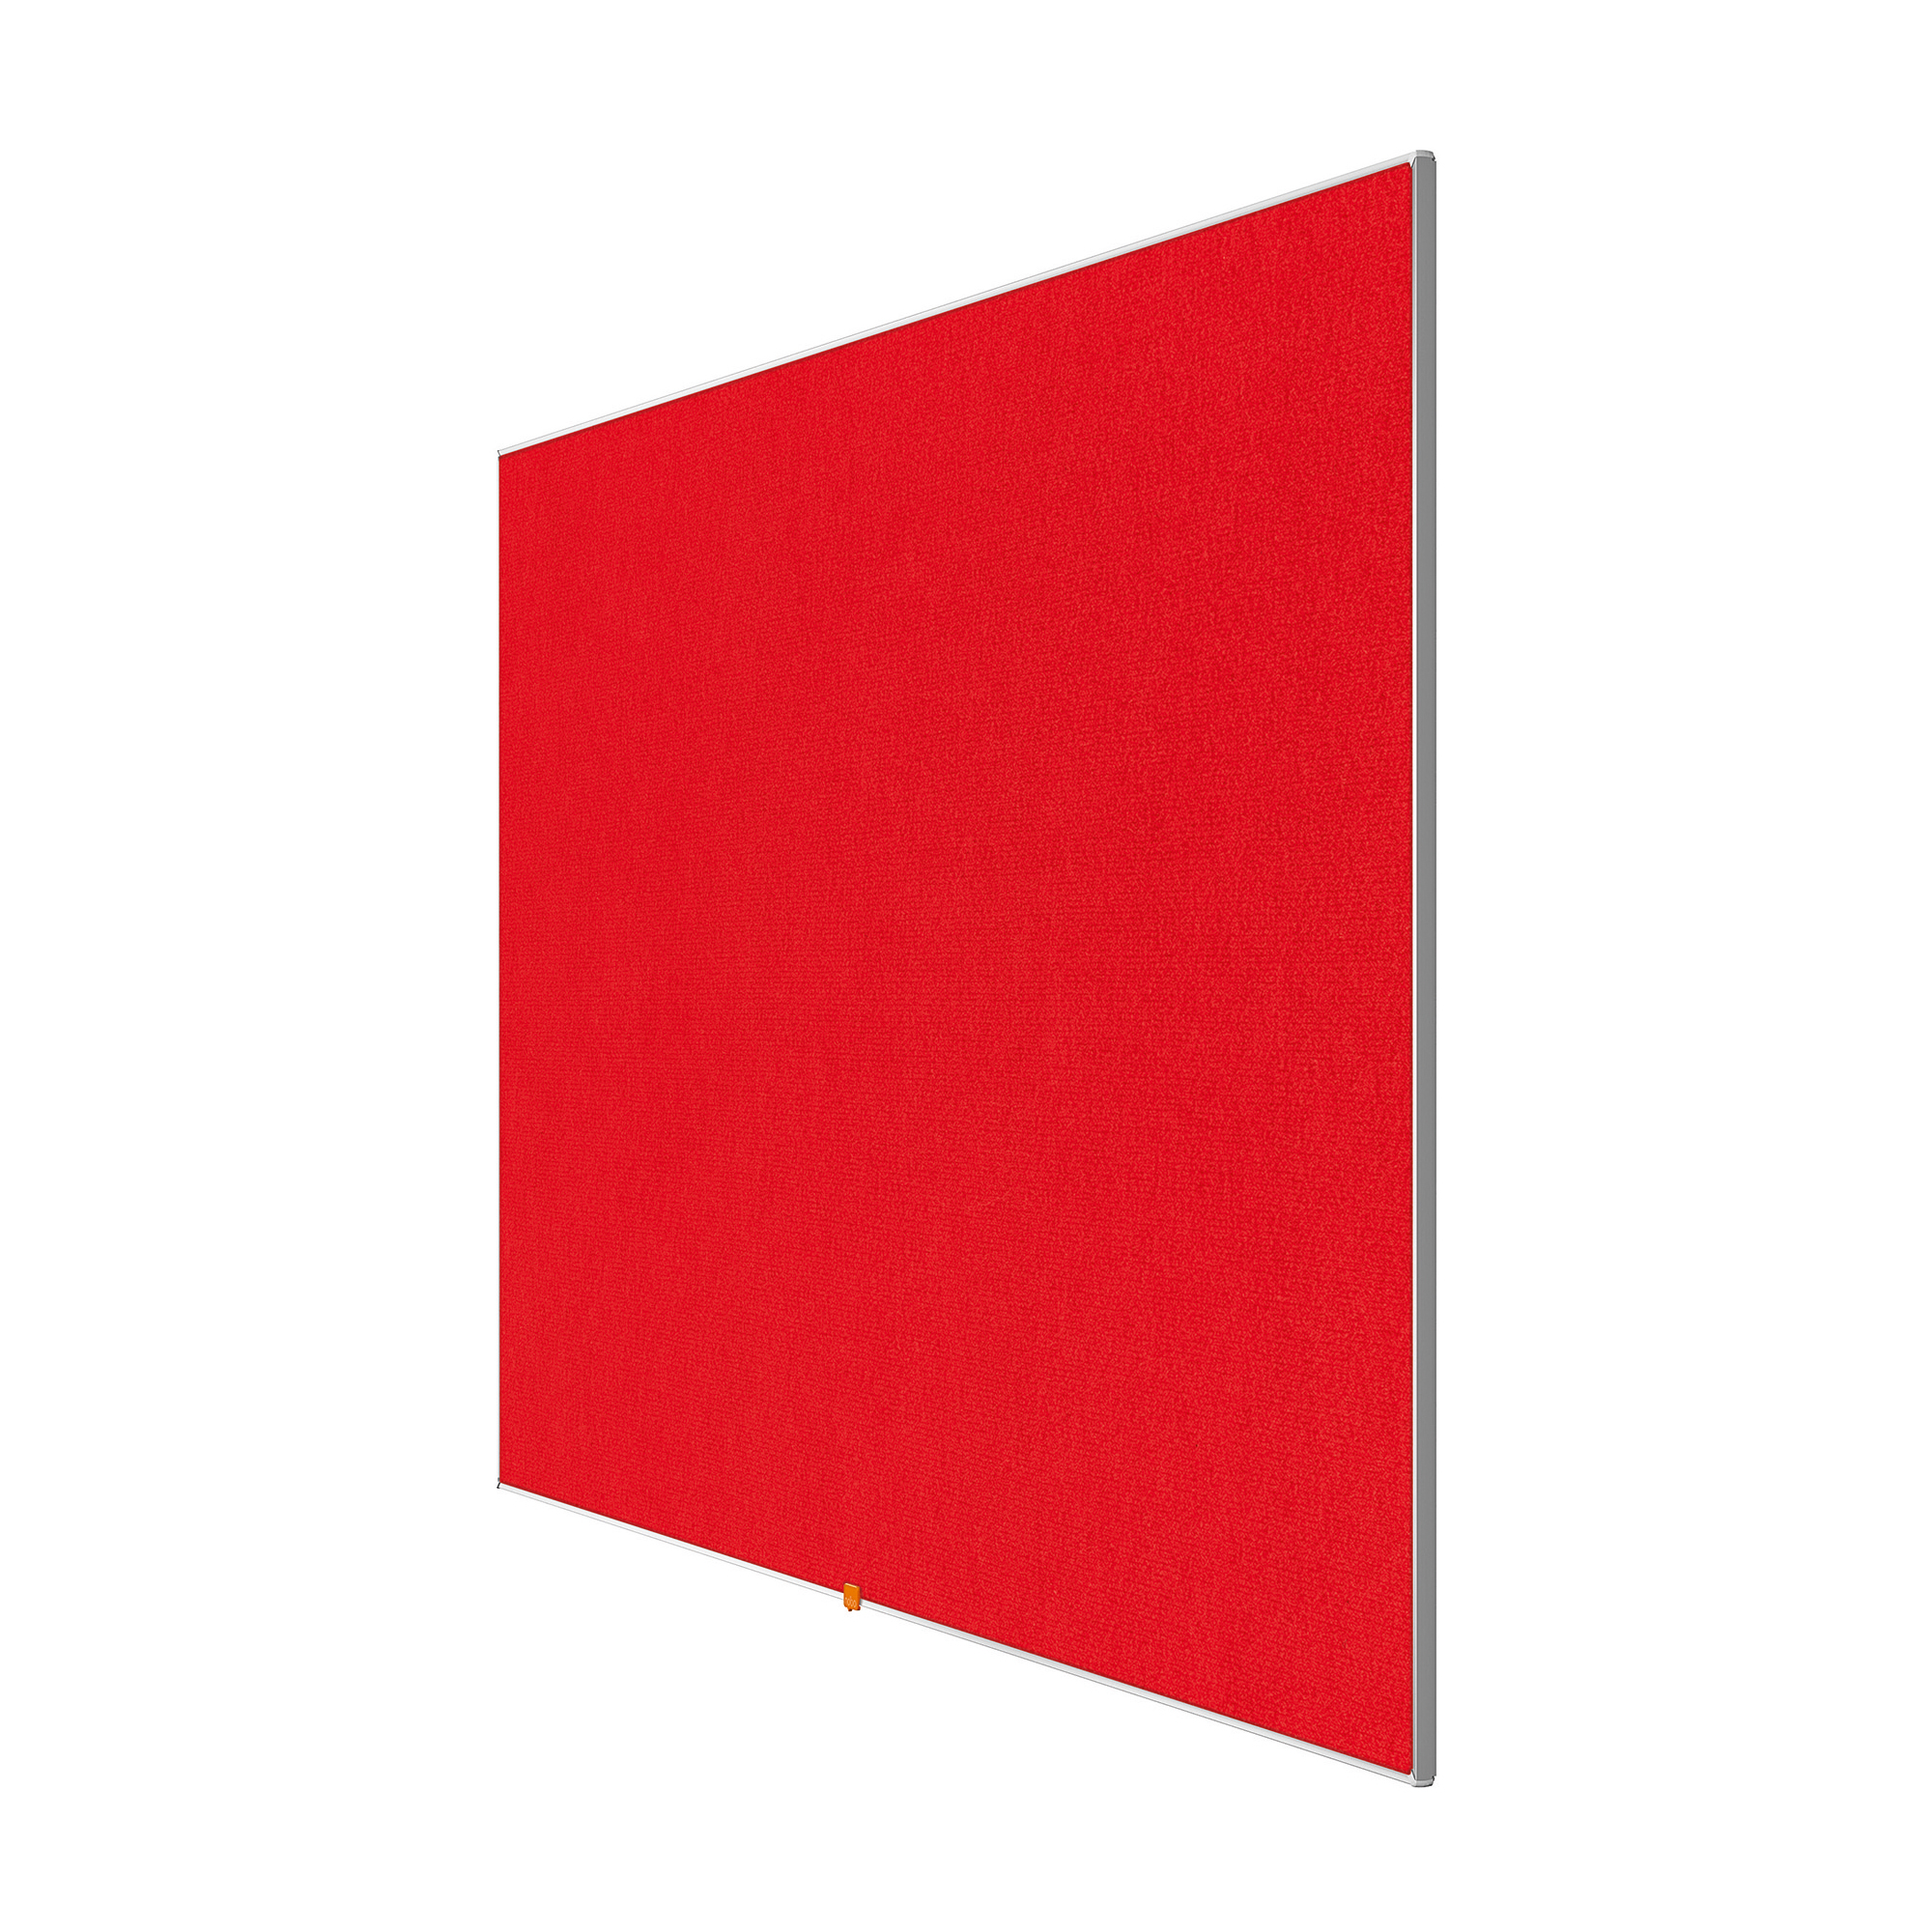 Bulletin boards or accessories Nobo 32 inch Widescreen Felt Board 710x400mm Red Ref 1905310